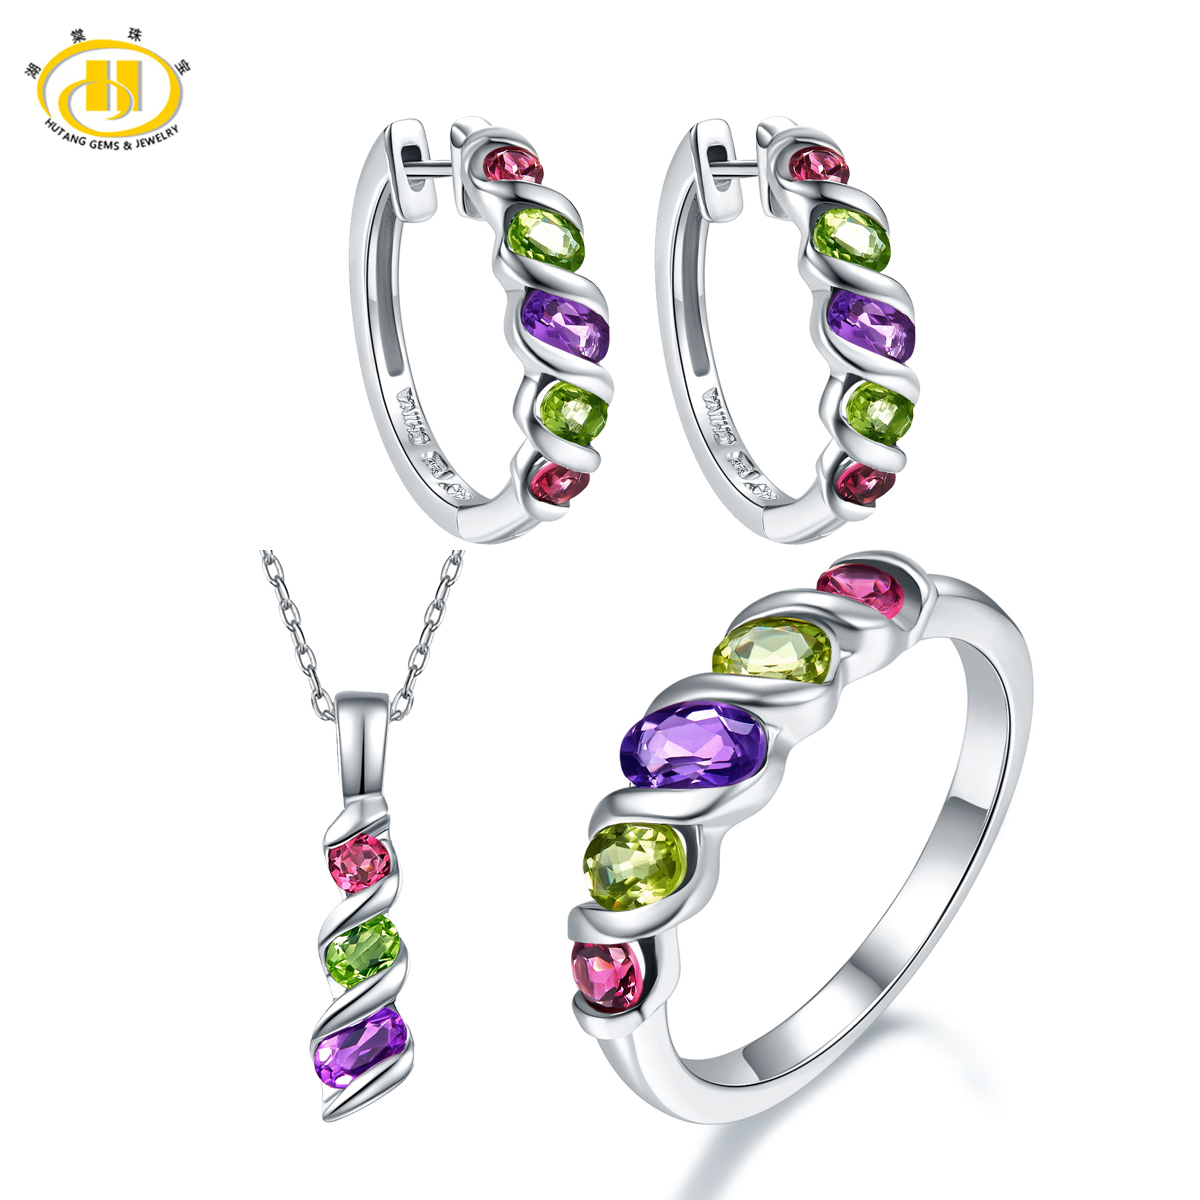 Hutang New Fashion Design Colorful Gemstone Jewelry Sets for Women Solid 925 Sterling Si ...